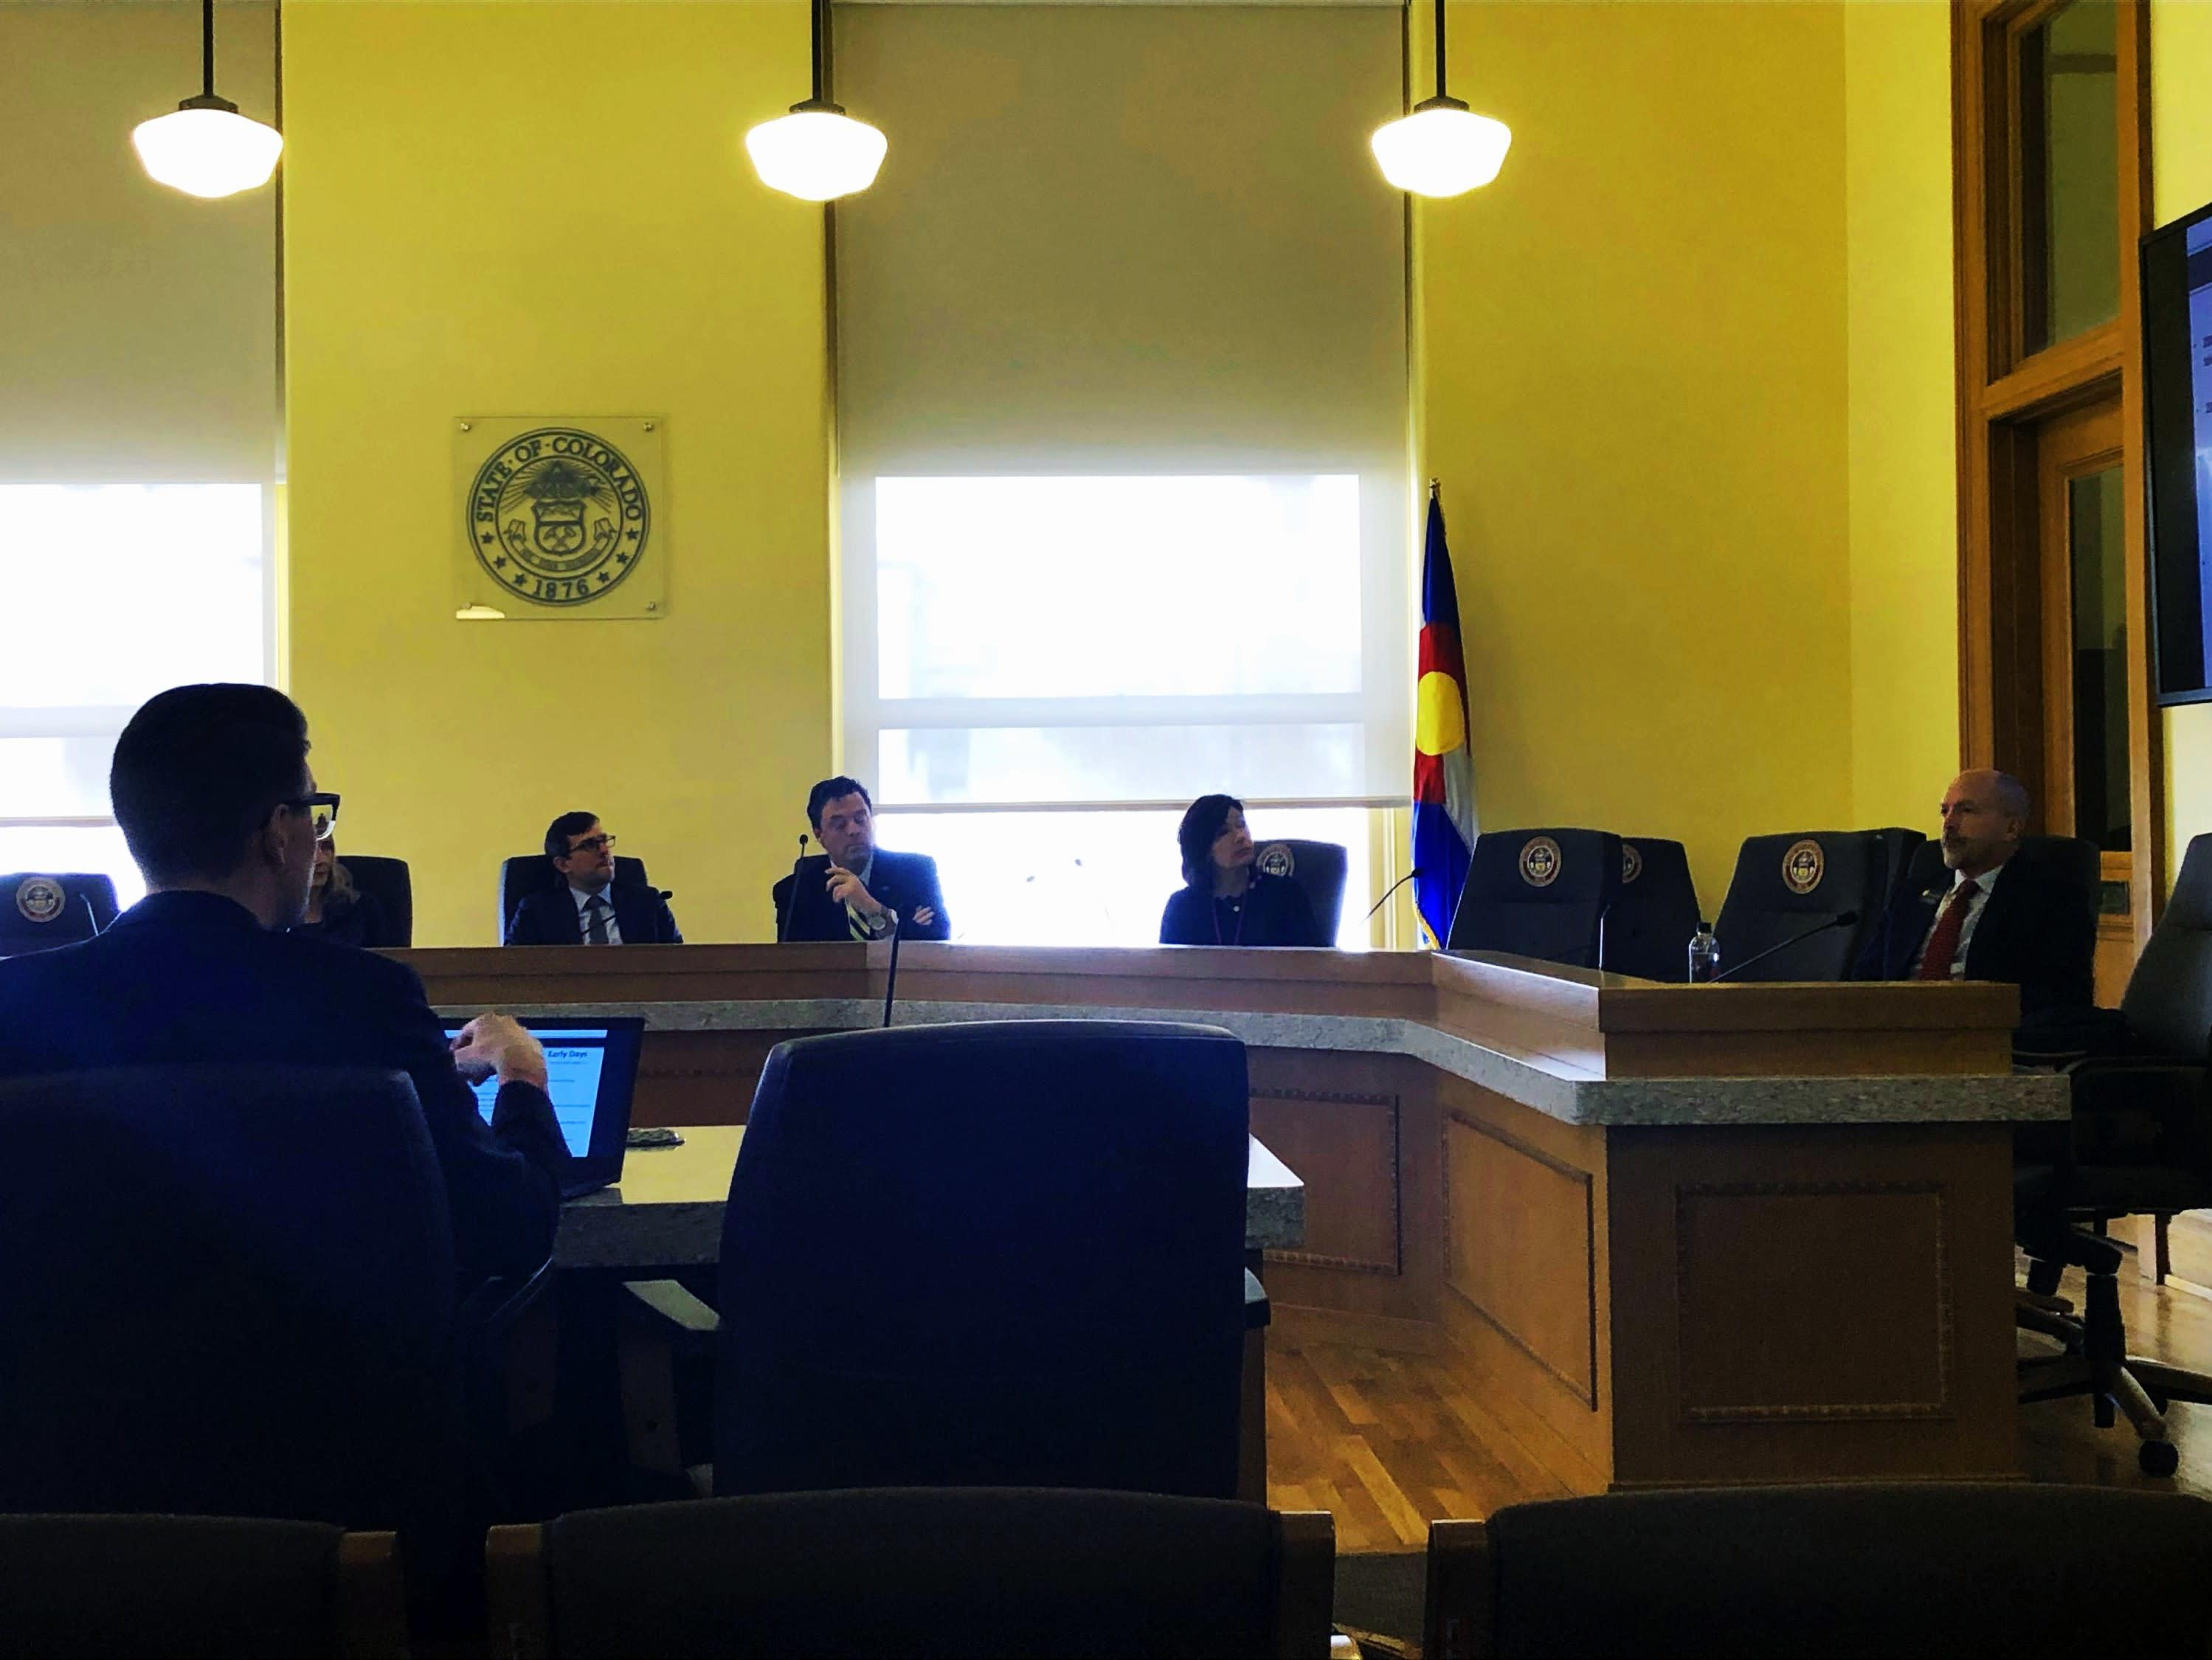 CTA Facilitates First Colorado Legislative Tech Caucus Meeting of 2019 Legislative Session